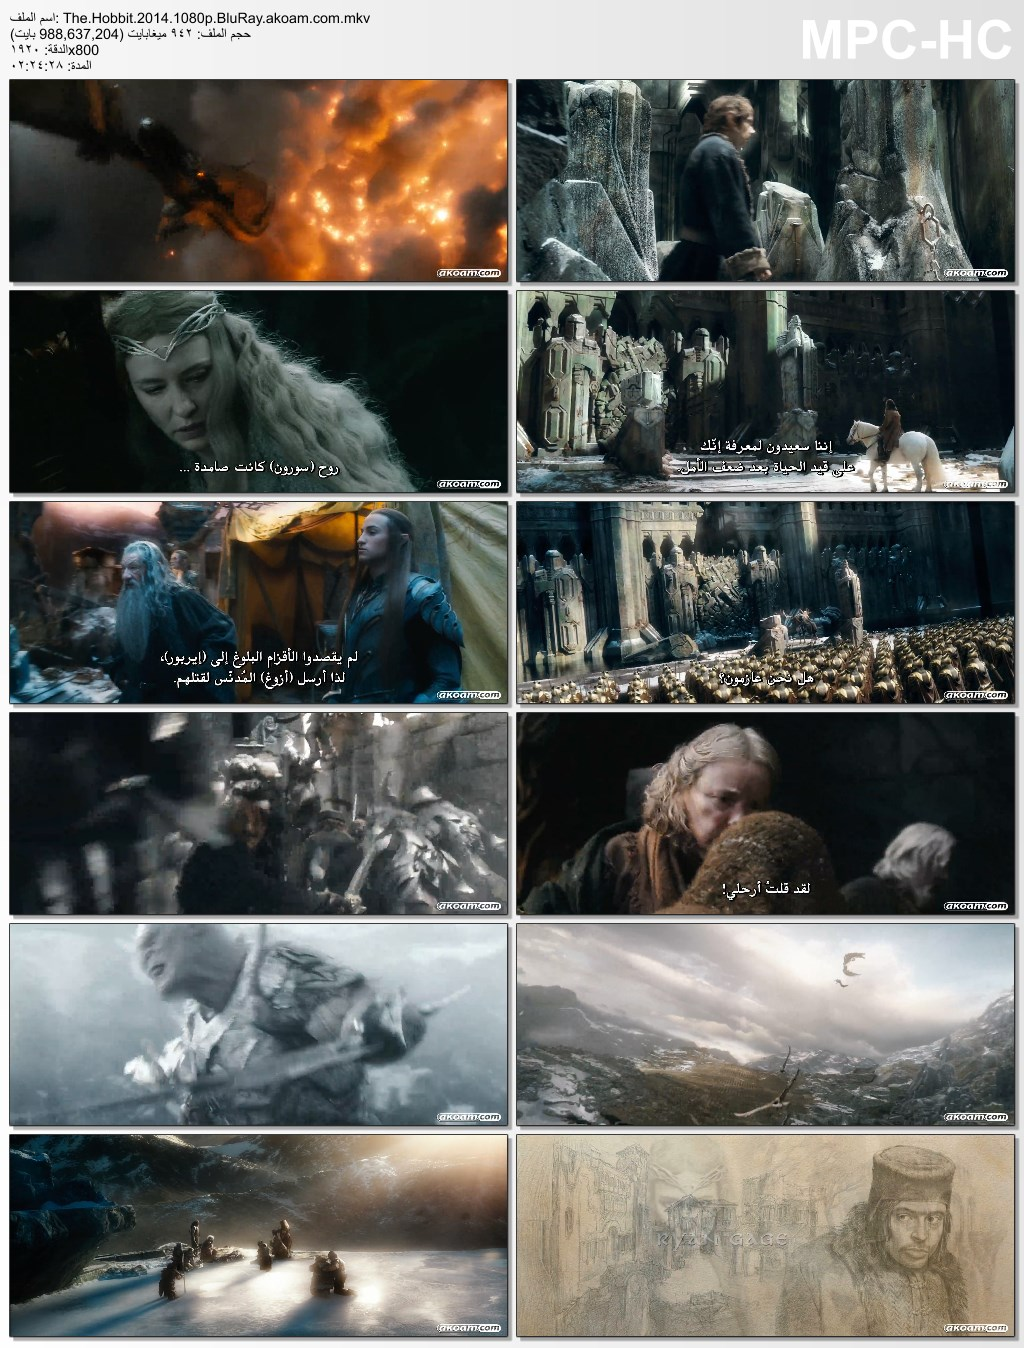 الهوبيت: رحلة غير متوقعة,الهوبيت: خراب التنين سموج,The Hobbit,The Hobbit: An Unexpected Journey,The Hobbit: The Desolation of Smaug,The Hobbit: The Battle of the Five Armies,الهوبيت